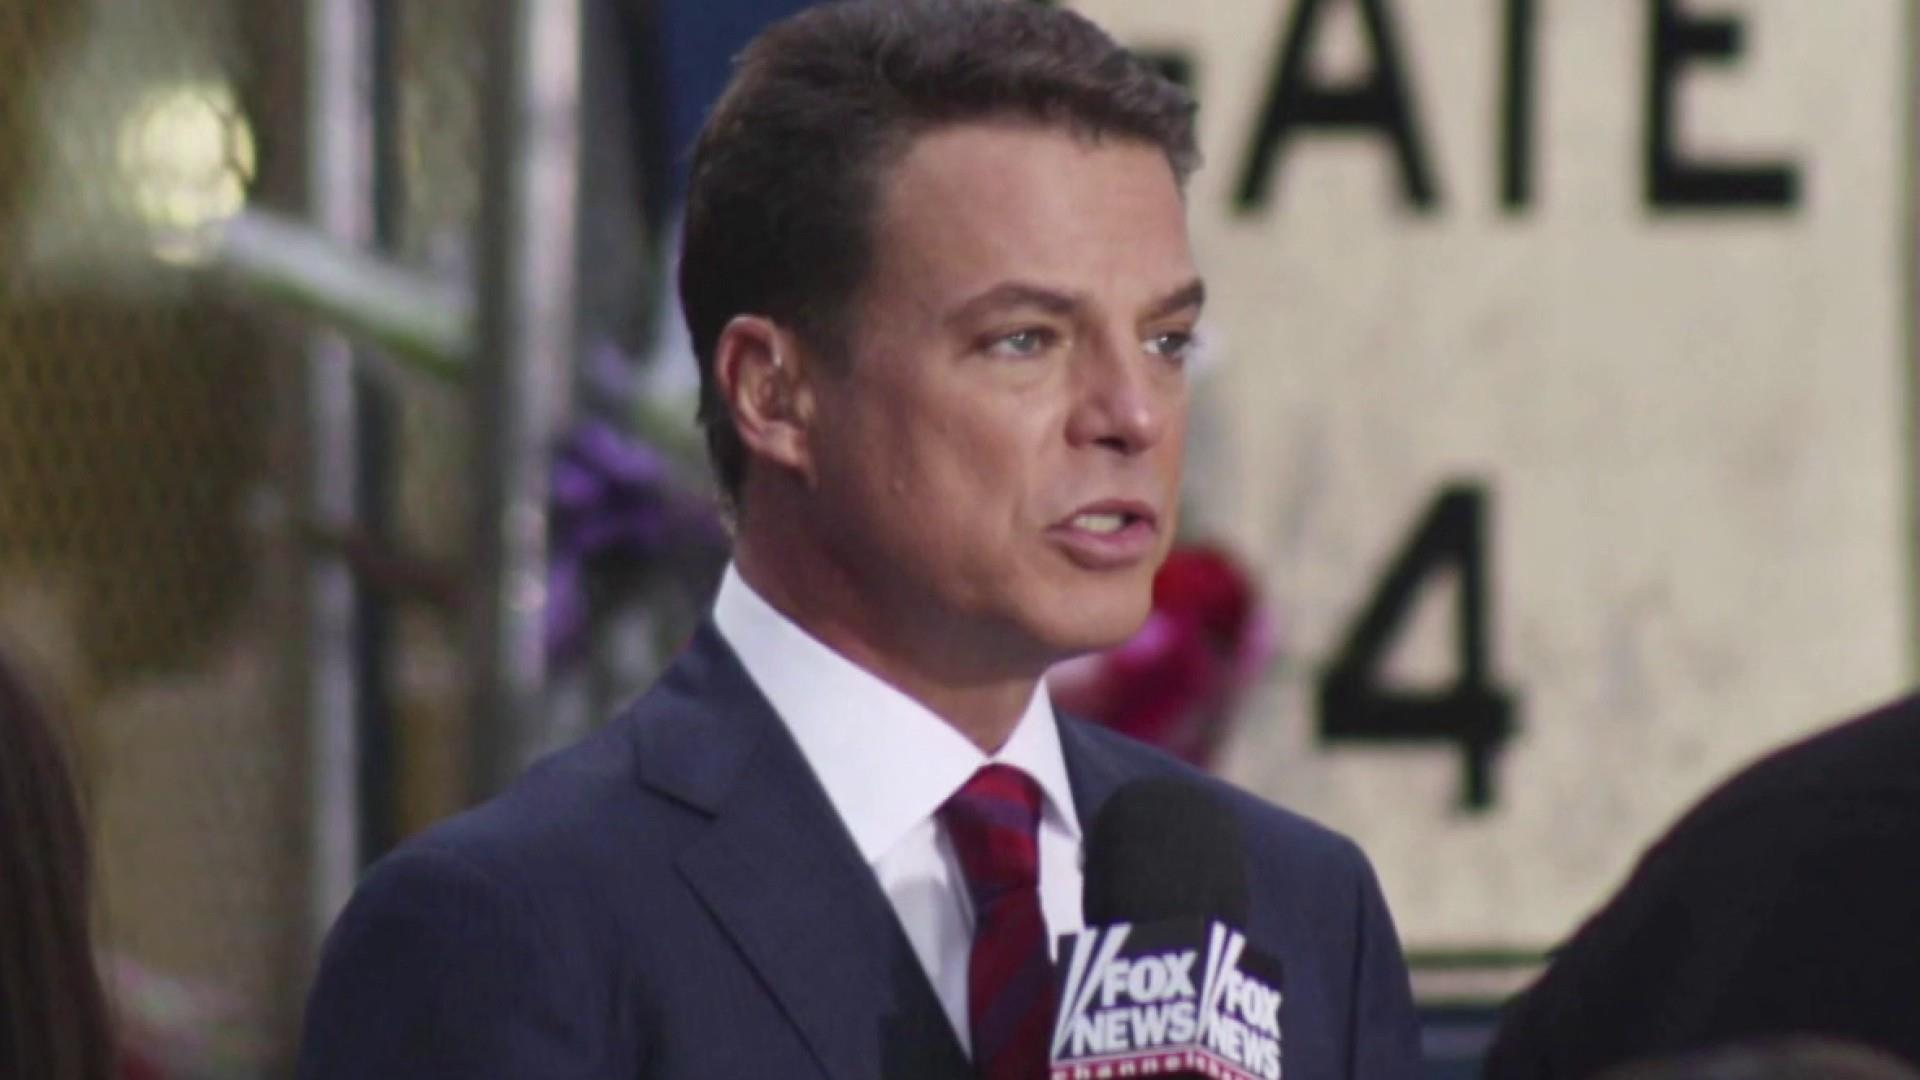 Shep Smith leaves Fox News after critiquing Trump regularly